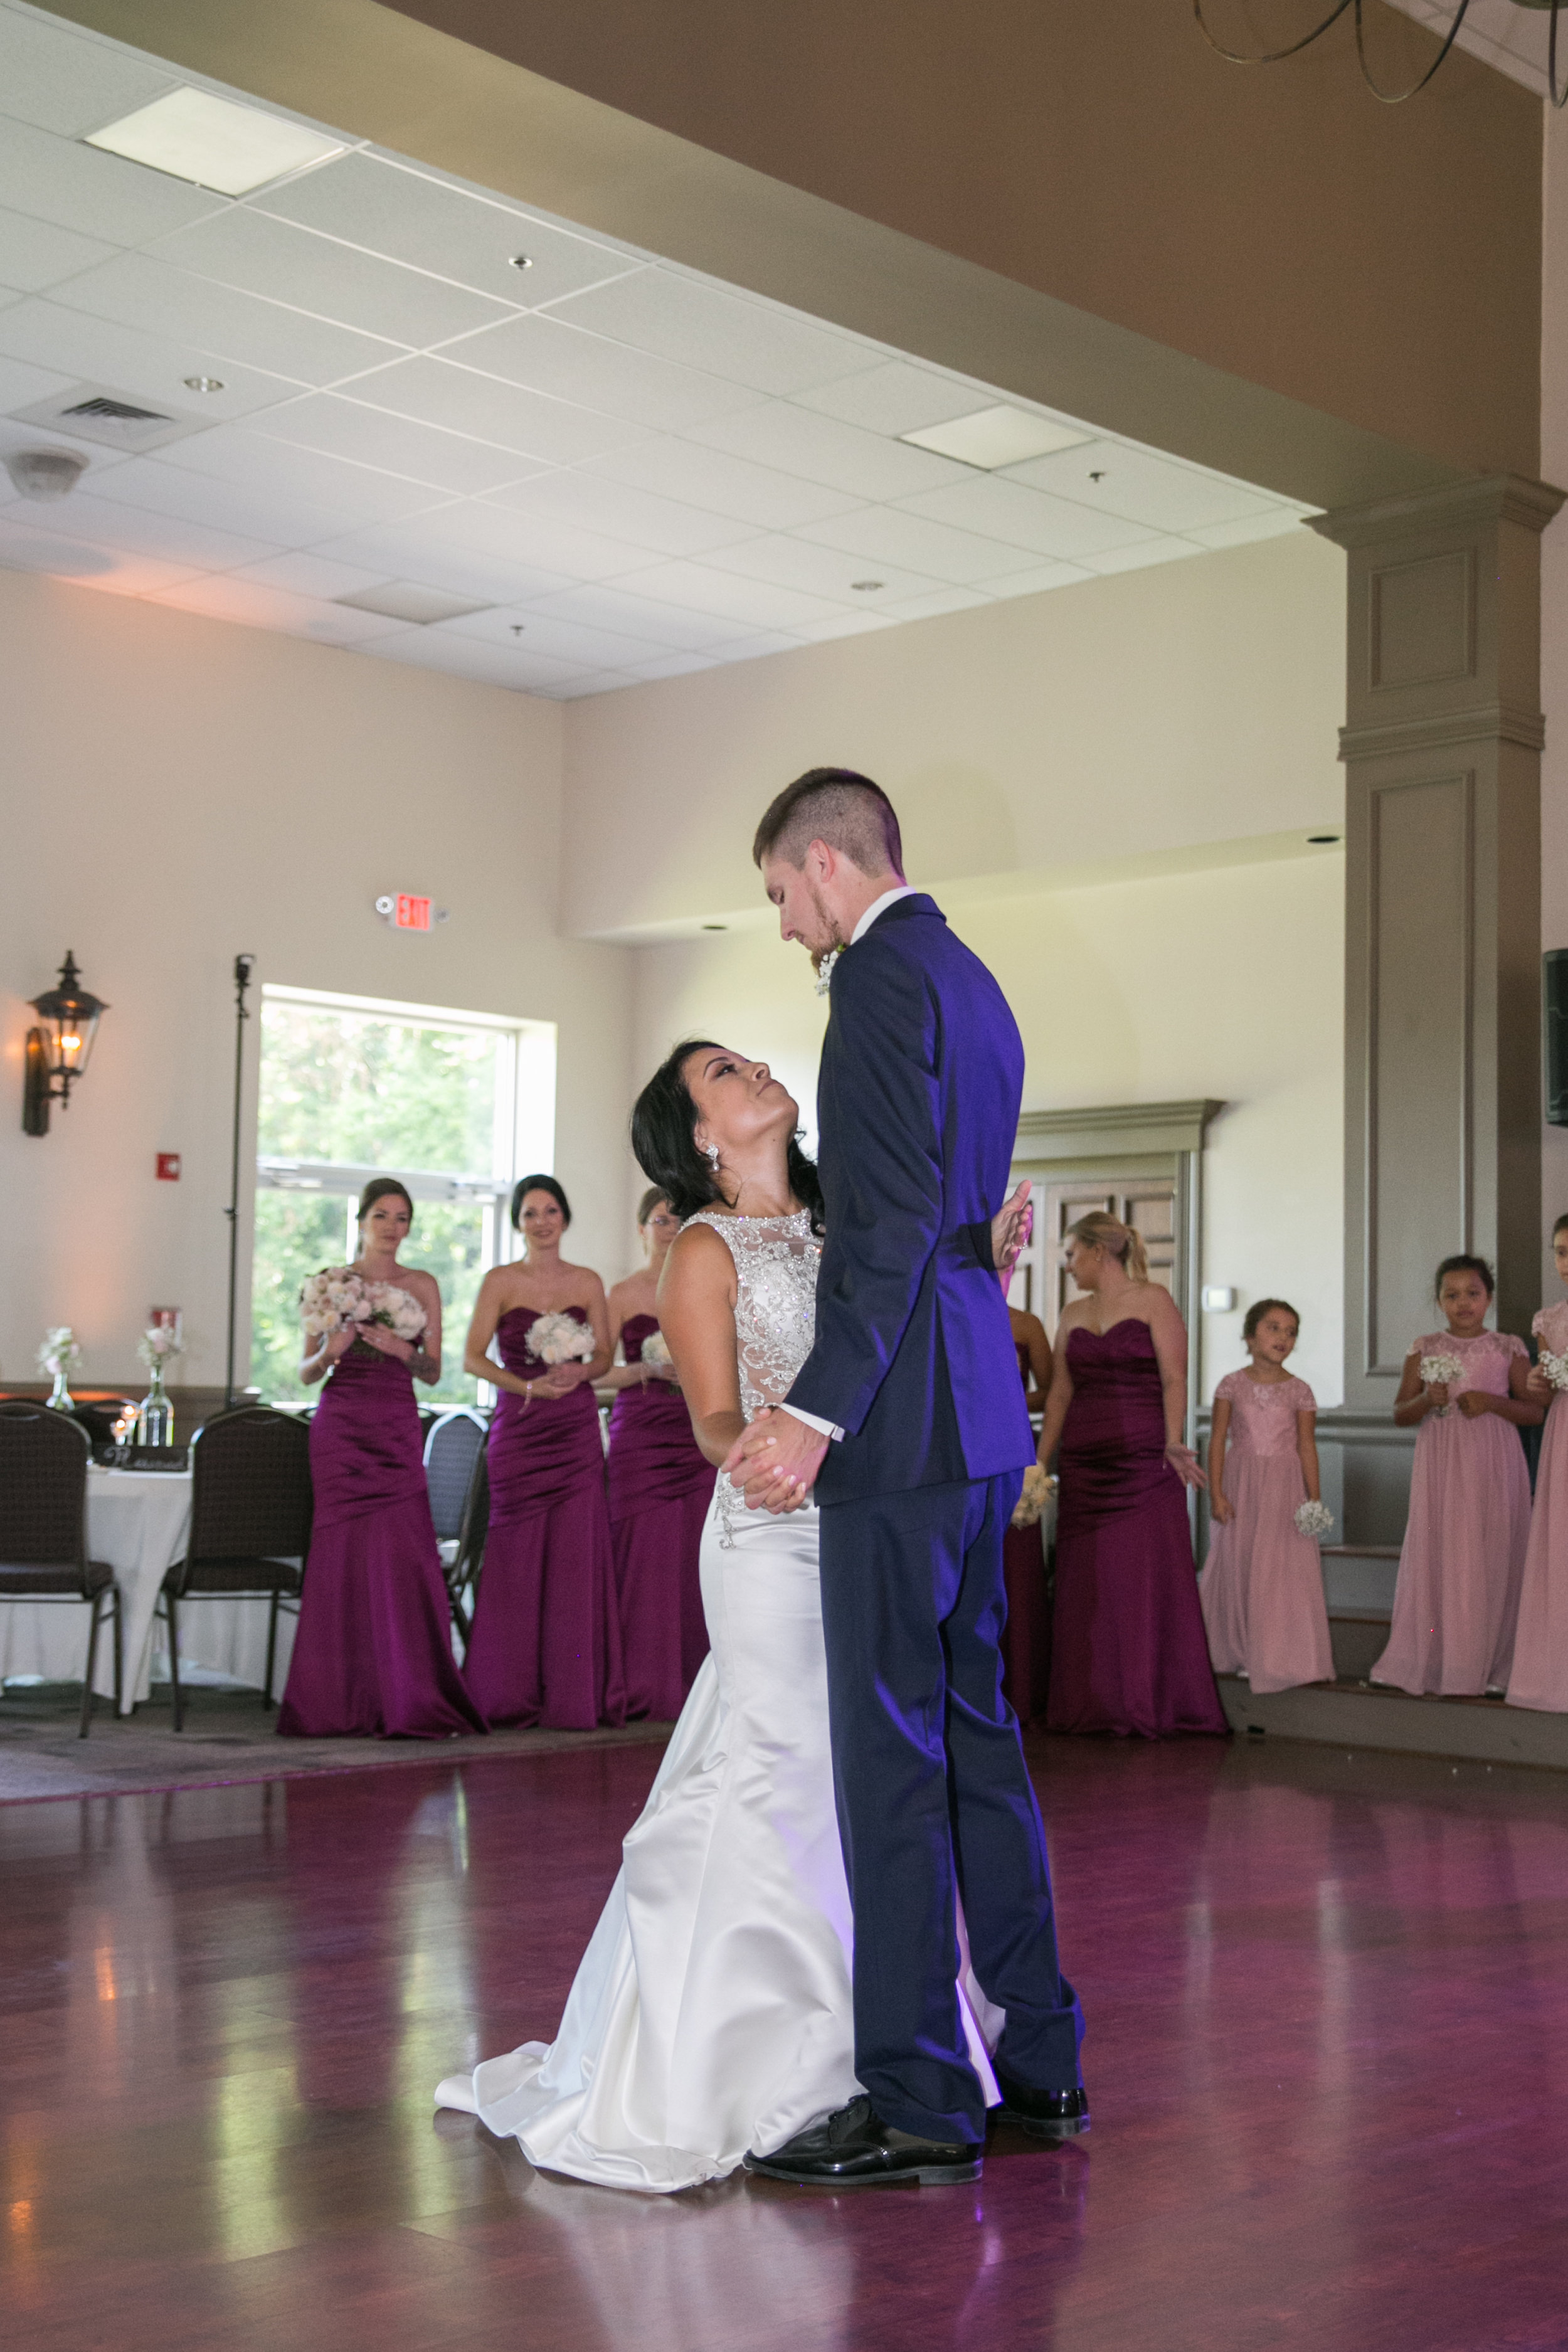 Nashville_Wedding_Photographers_DJ_Lighting_Bowling_Franklin-34.jpg